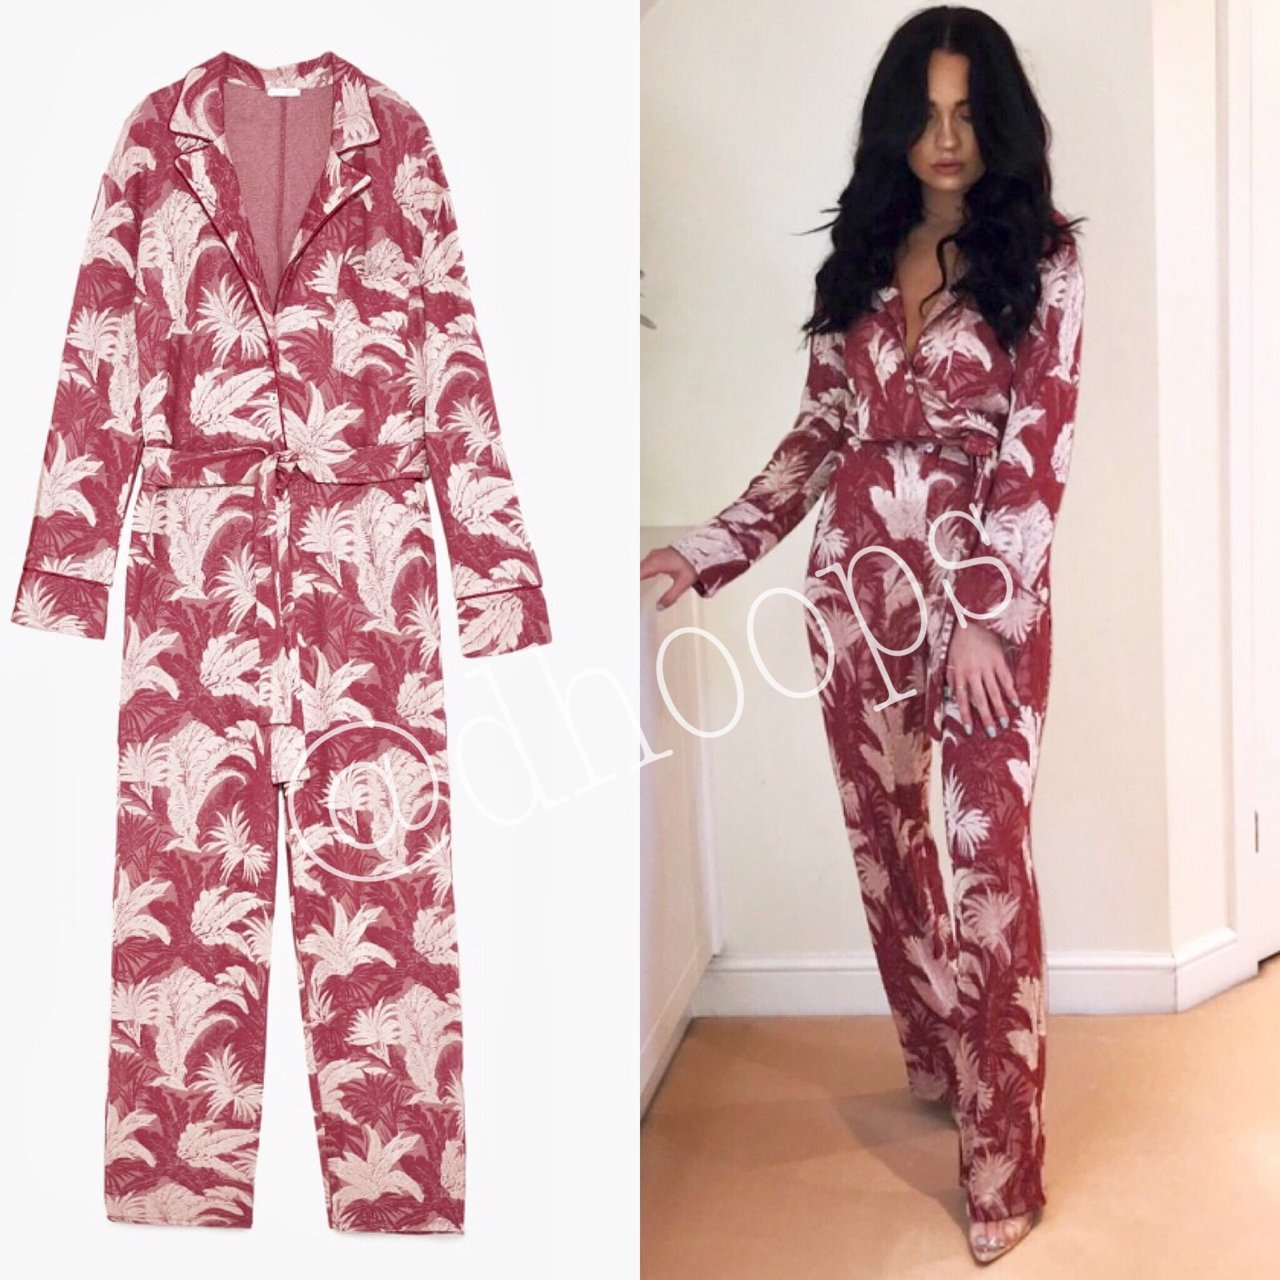 c1327e042100 Zara Jacquard jumpsuit sizes S available new with is final